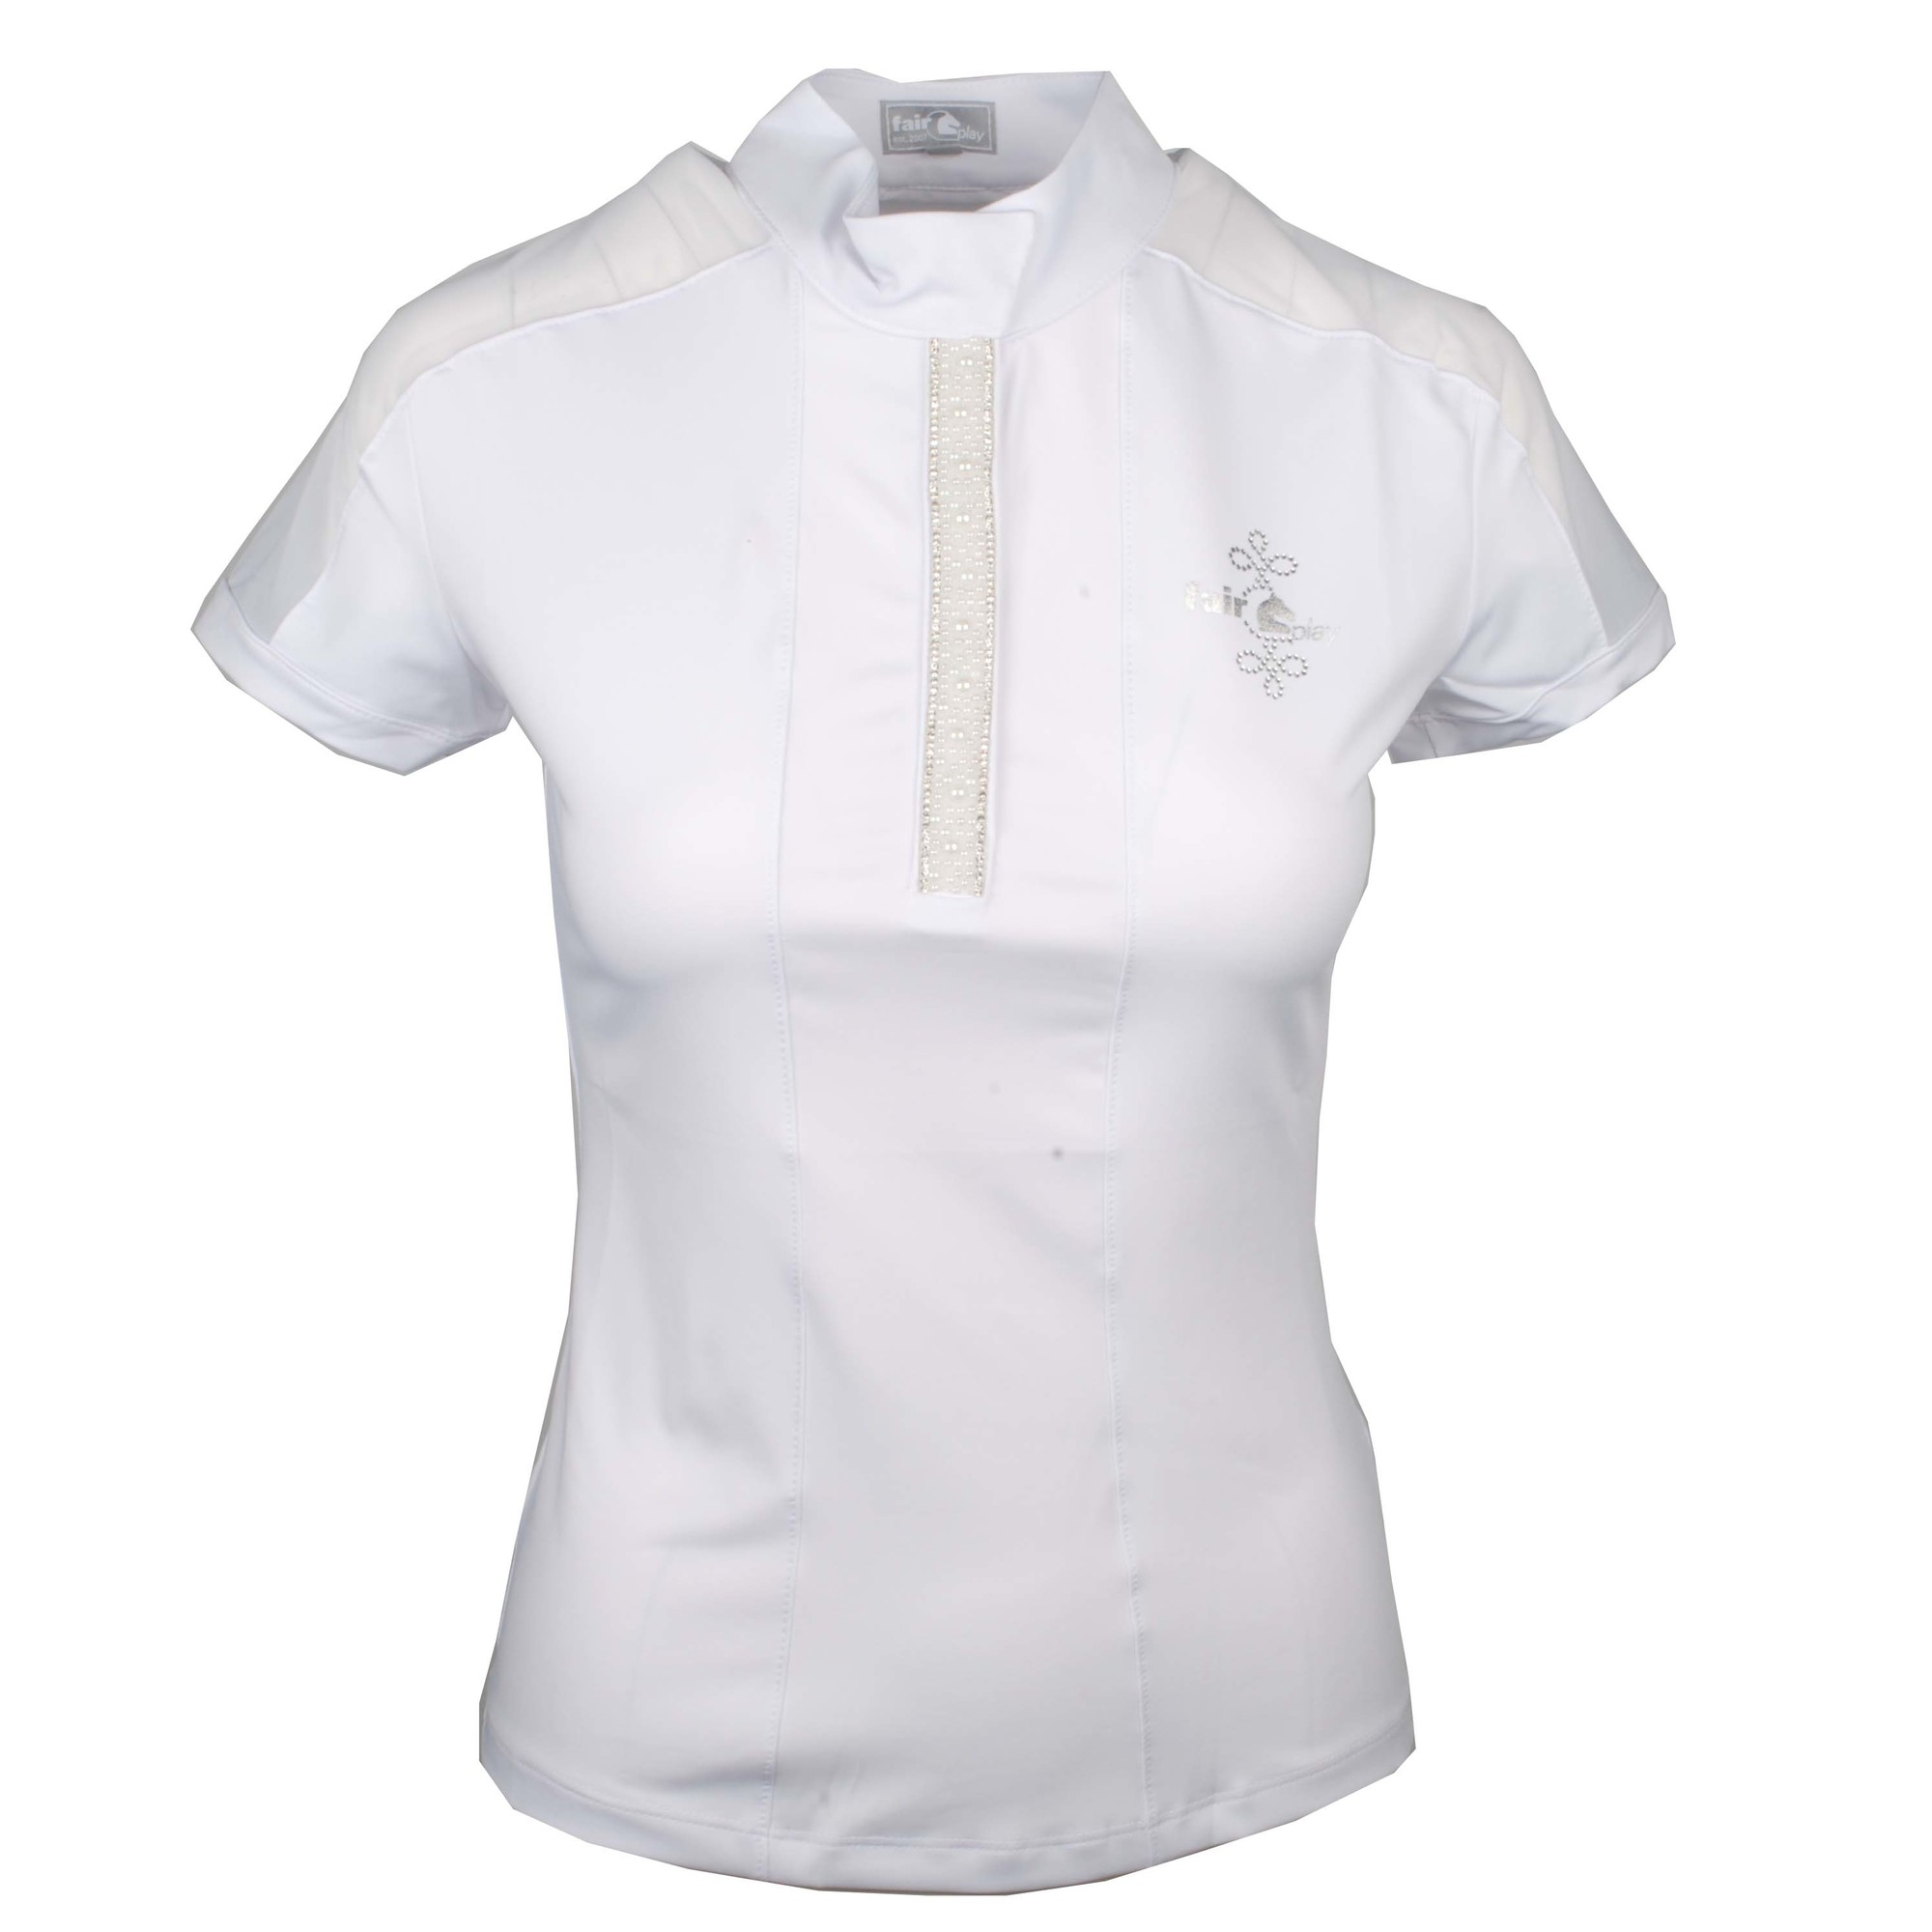 Fair Play Claire Pearl wedstrijdshirt wit maat:40